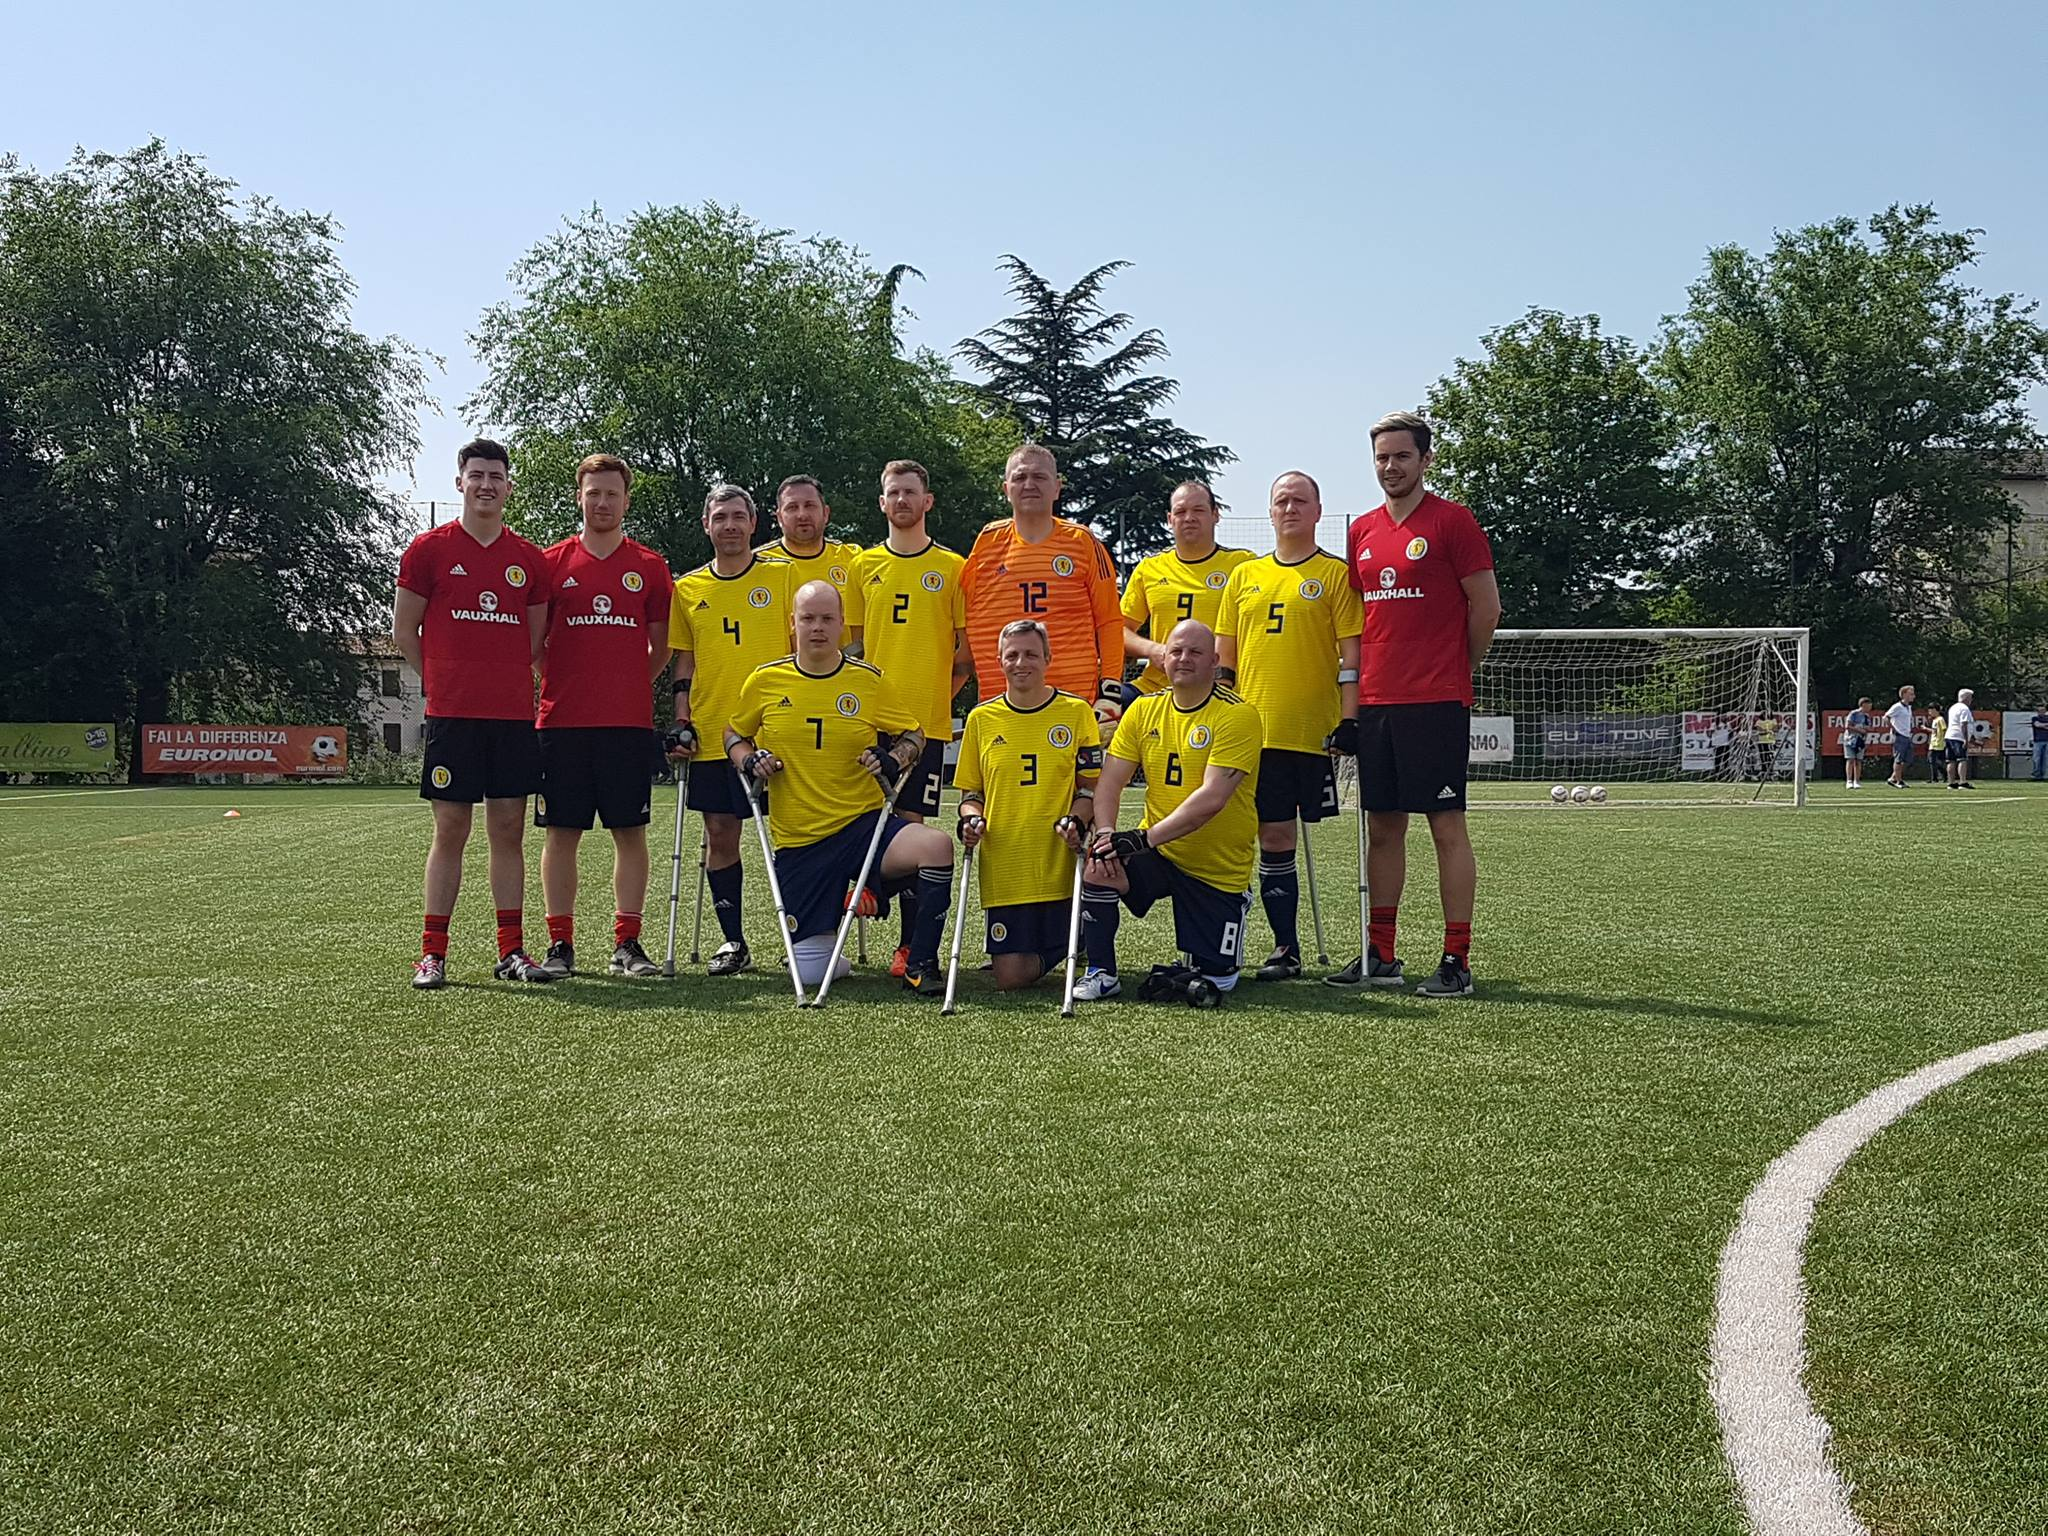 Scotland Seniors in Italy 2018